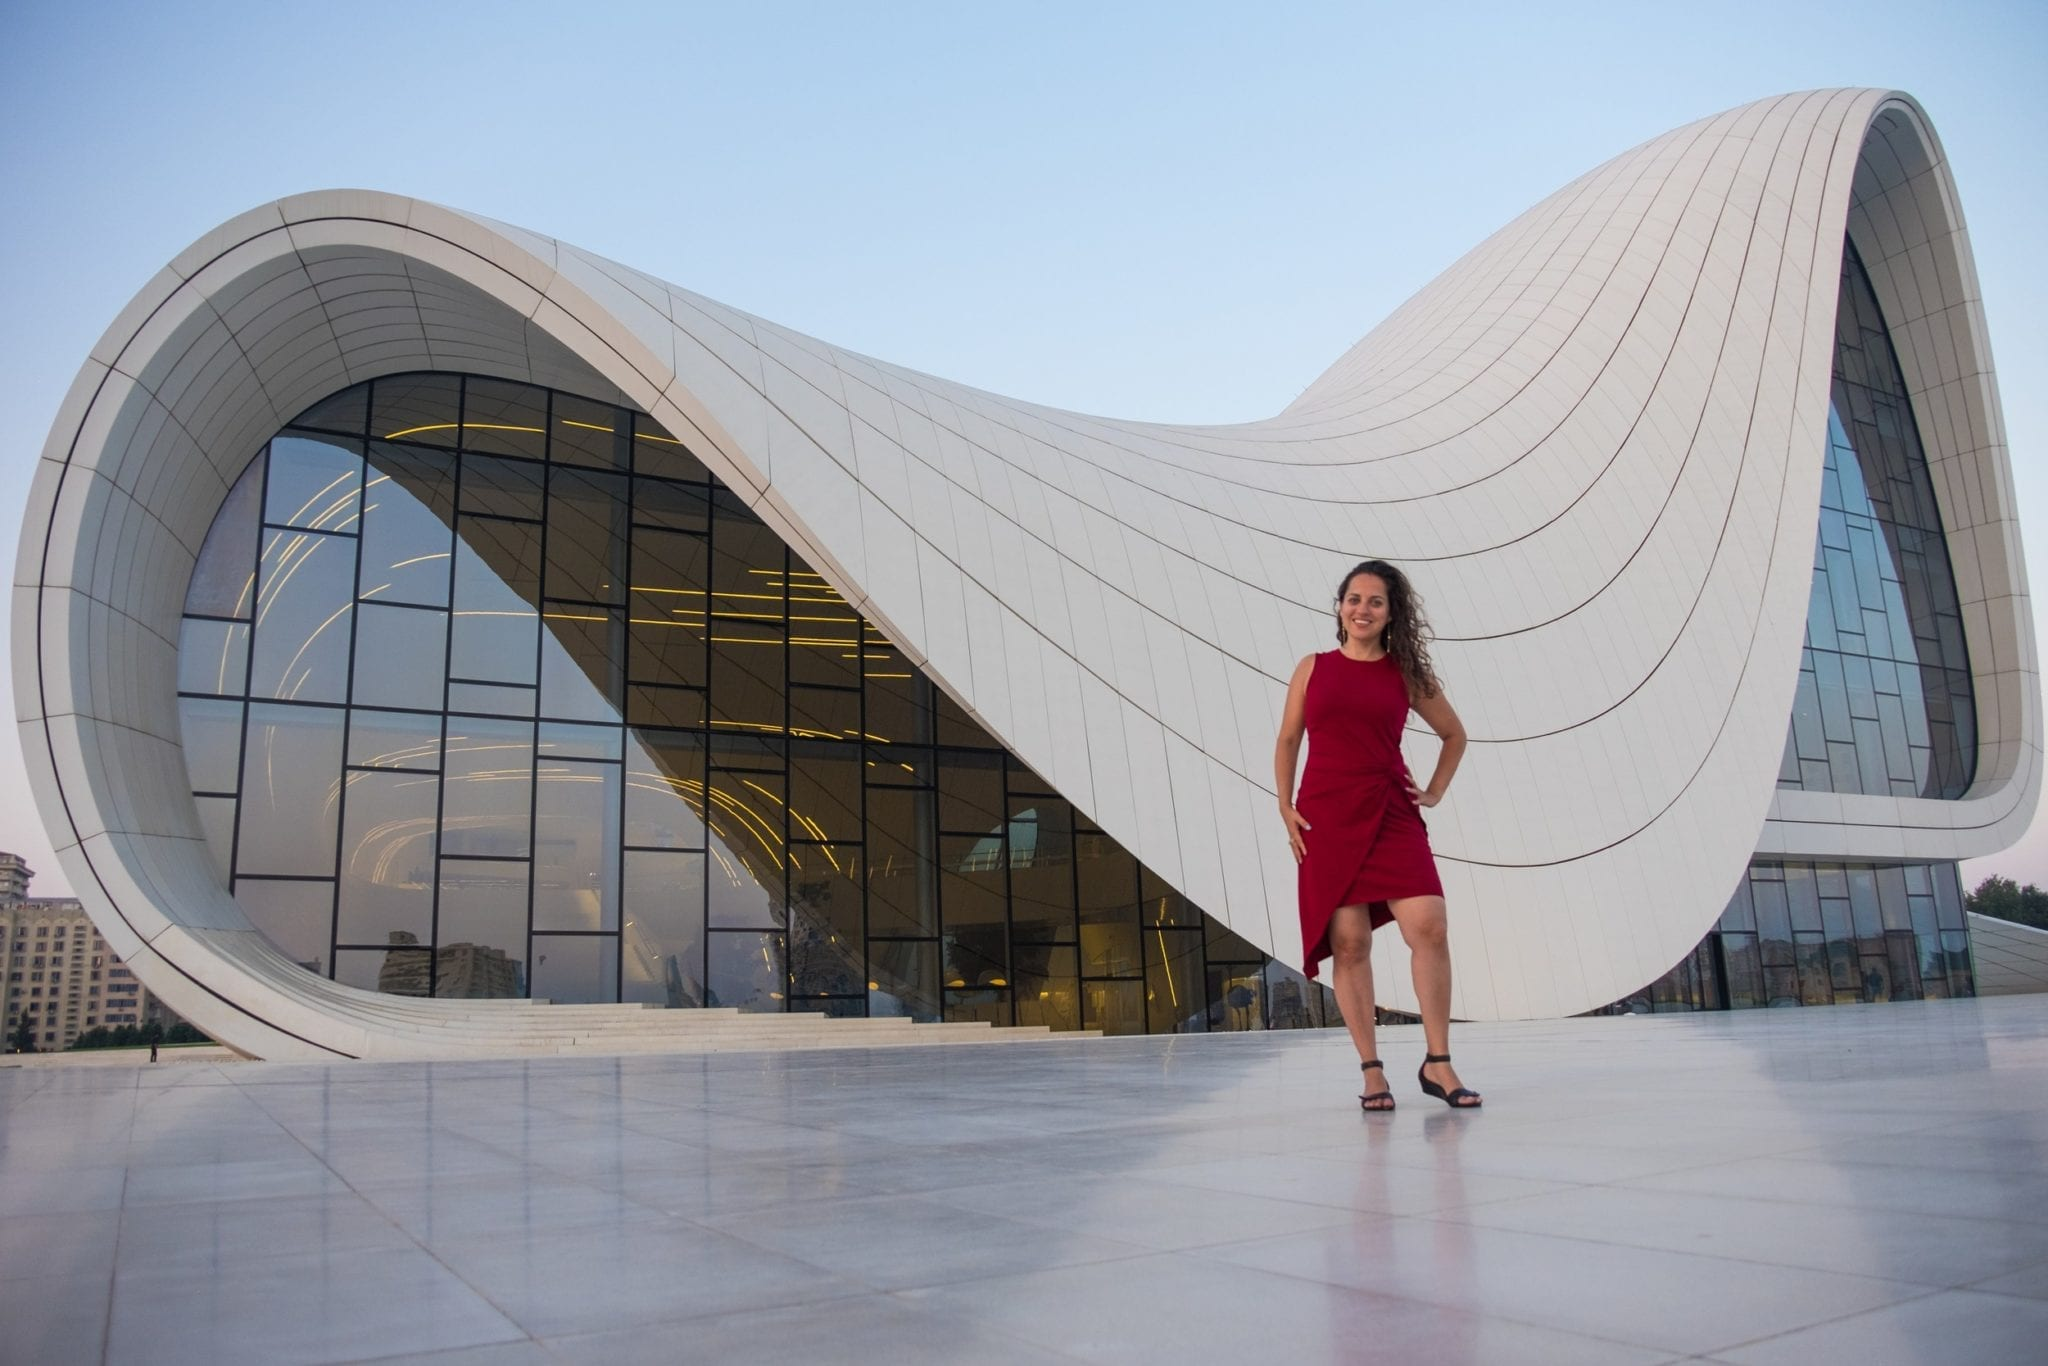 Kate poses in a red dress in front of the white swooping curvy roof and glass wall of the Heydar Aliyev Center in Baku, Azerbaijan.